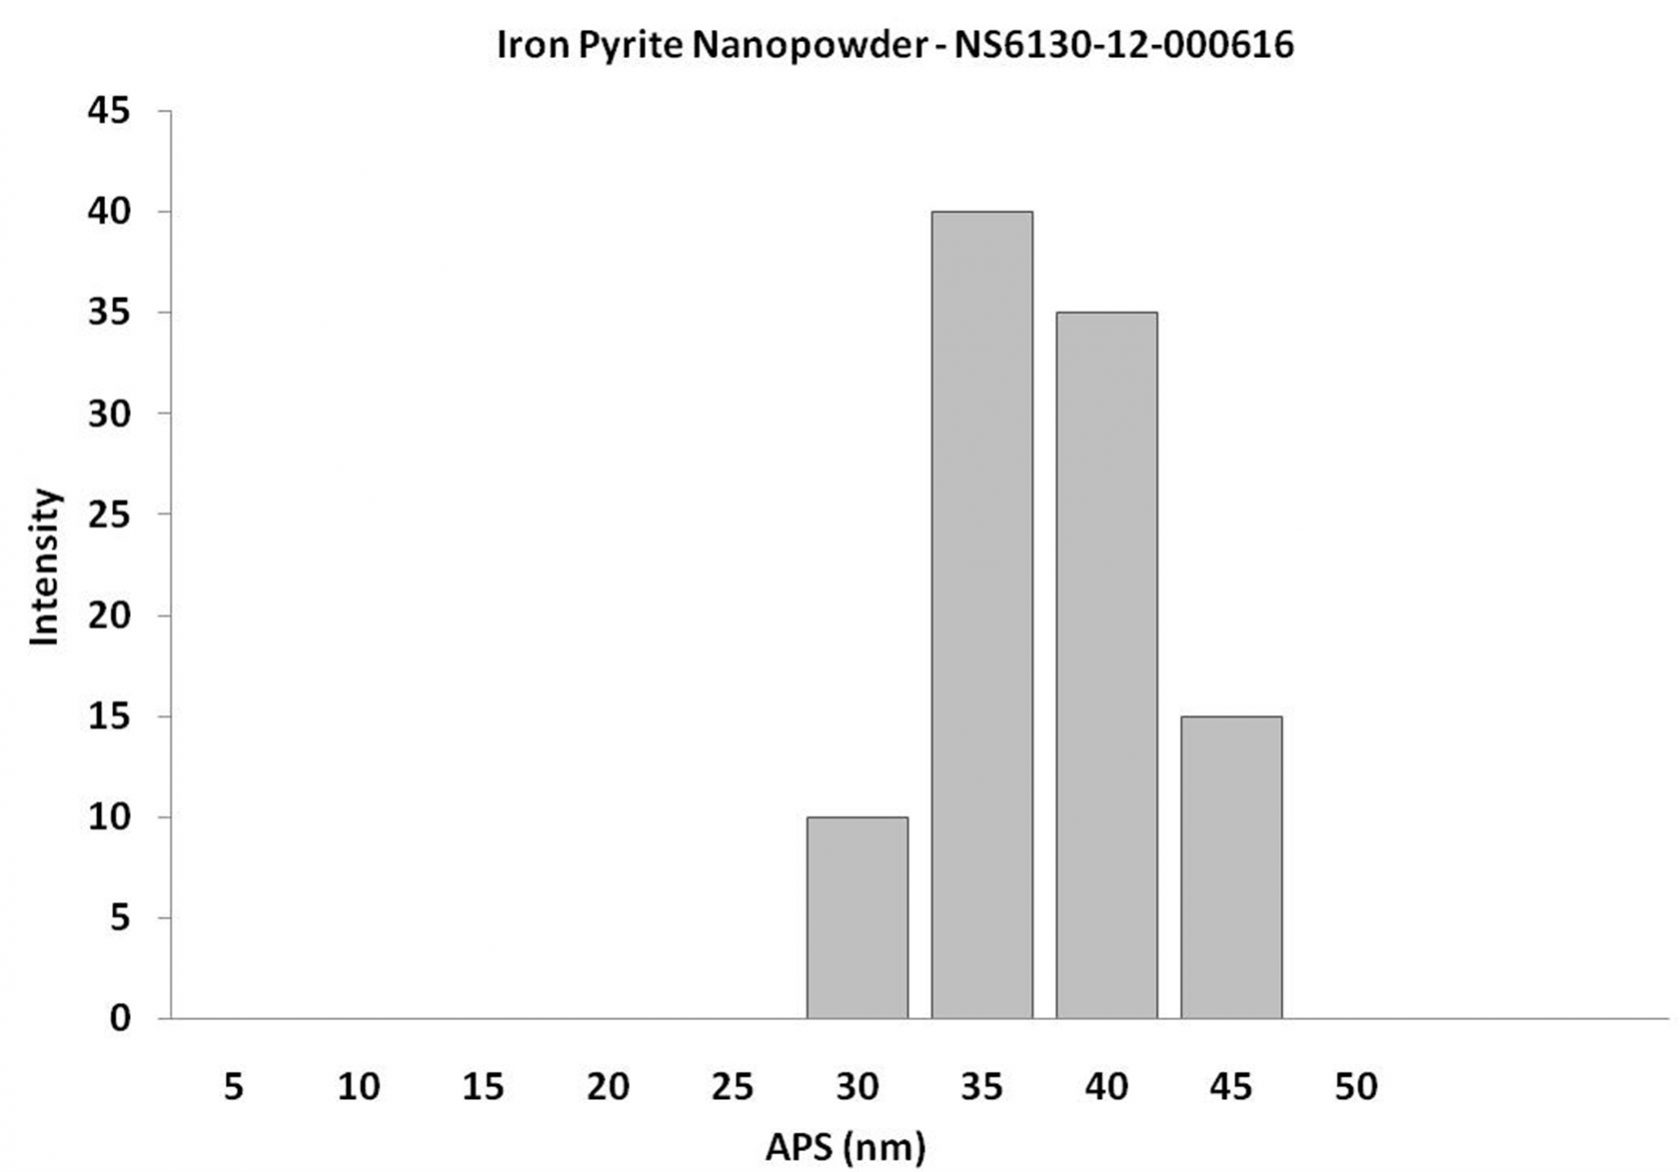 Iron Pyrite Nanopowder